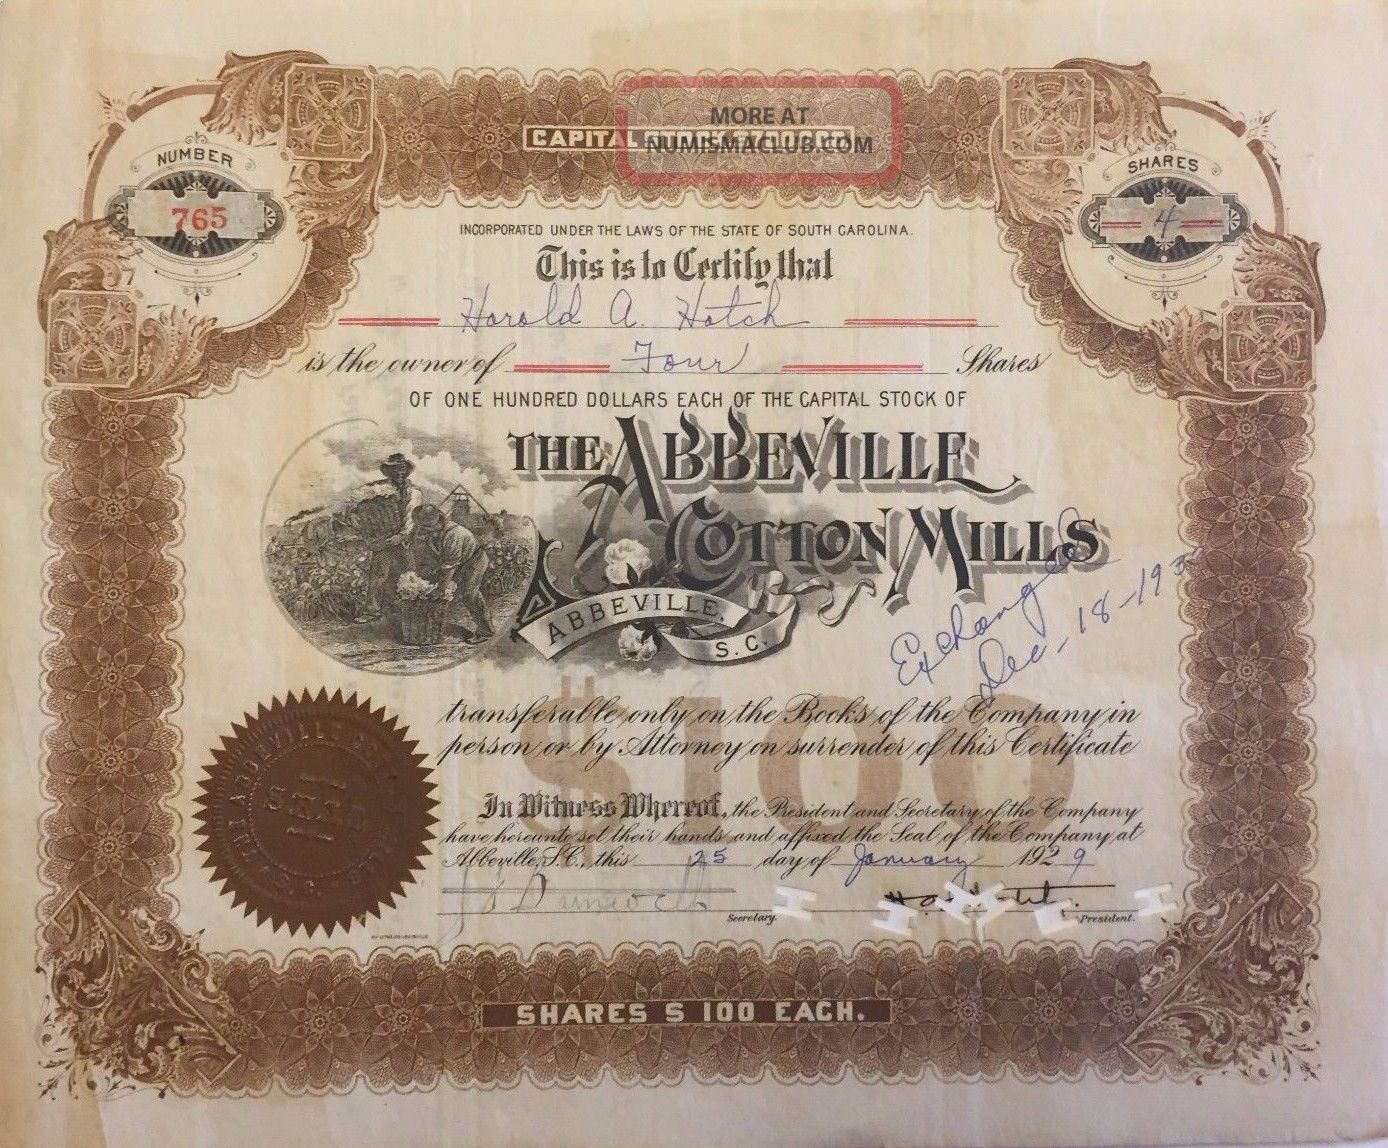 1929 Abbeville Cotton Mills Stock Certificate Rare South Carolina Slave Vignette Stocks & Bonds, Scripophily photo